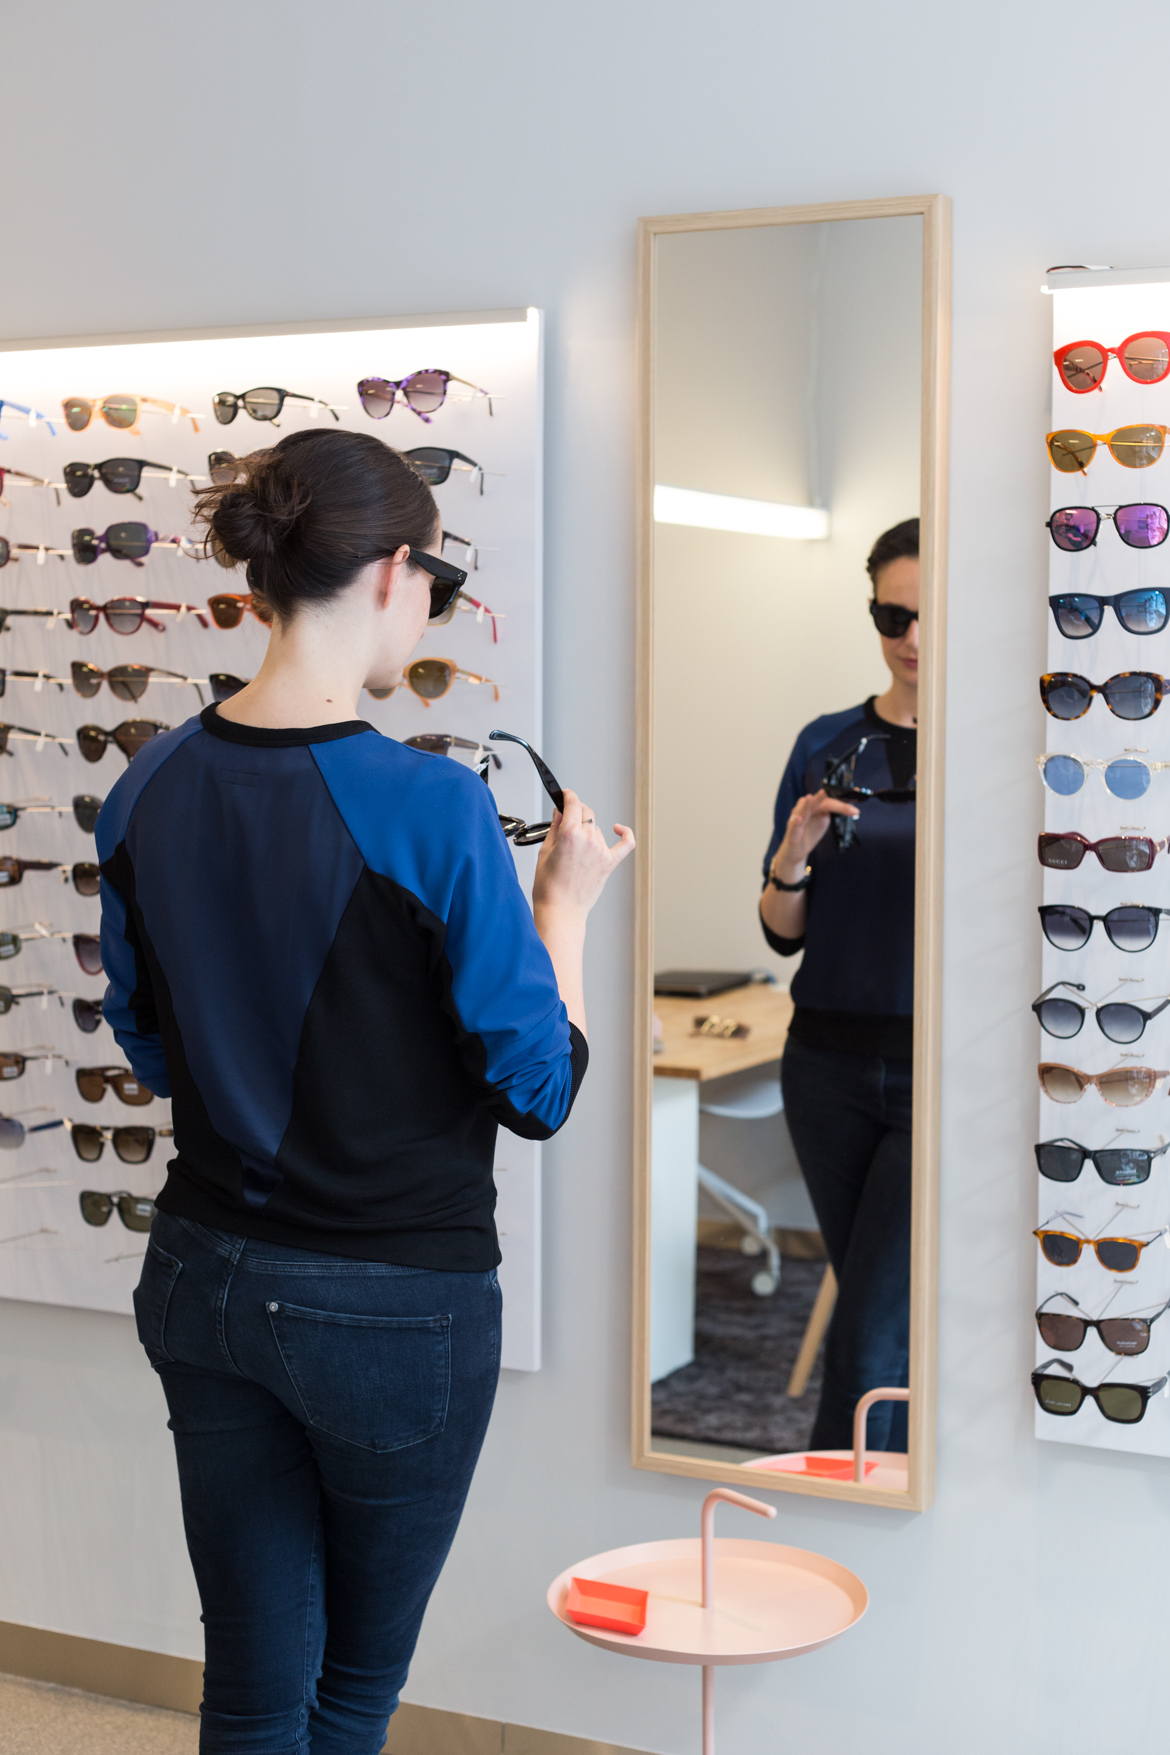 Choosing new sunglasses at De Wolf Opticiens